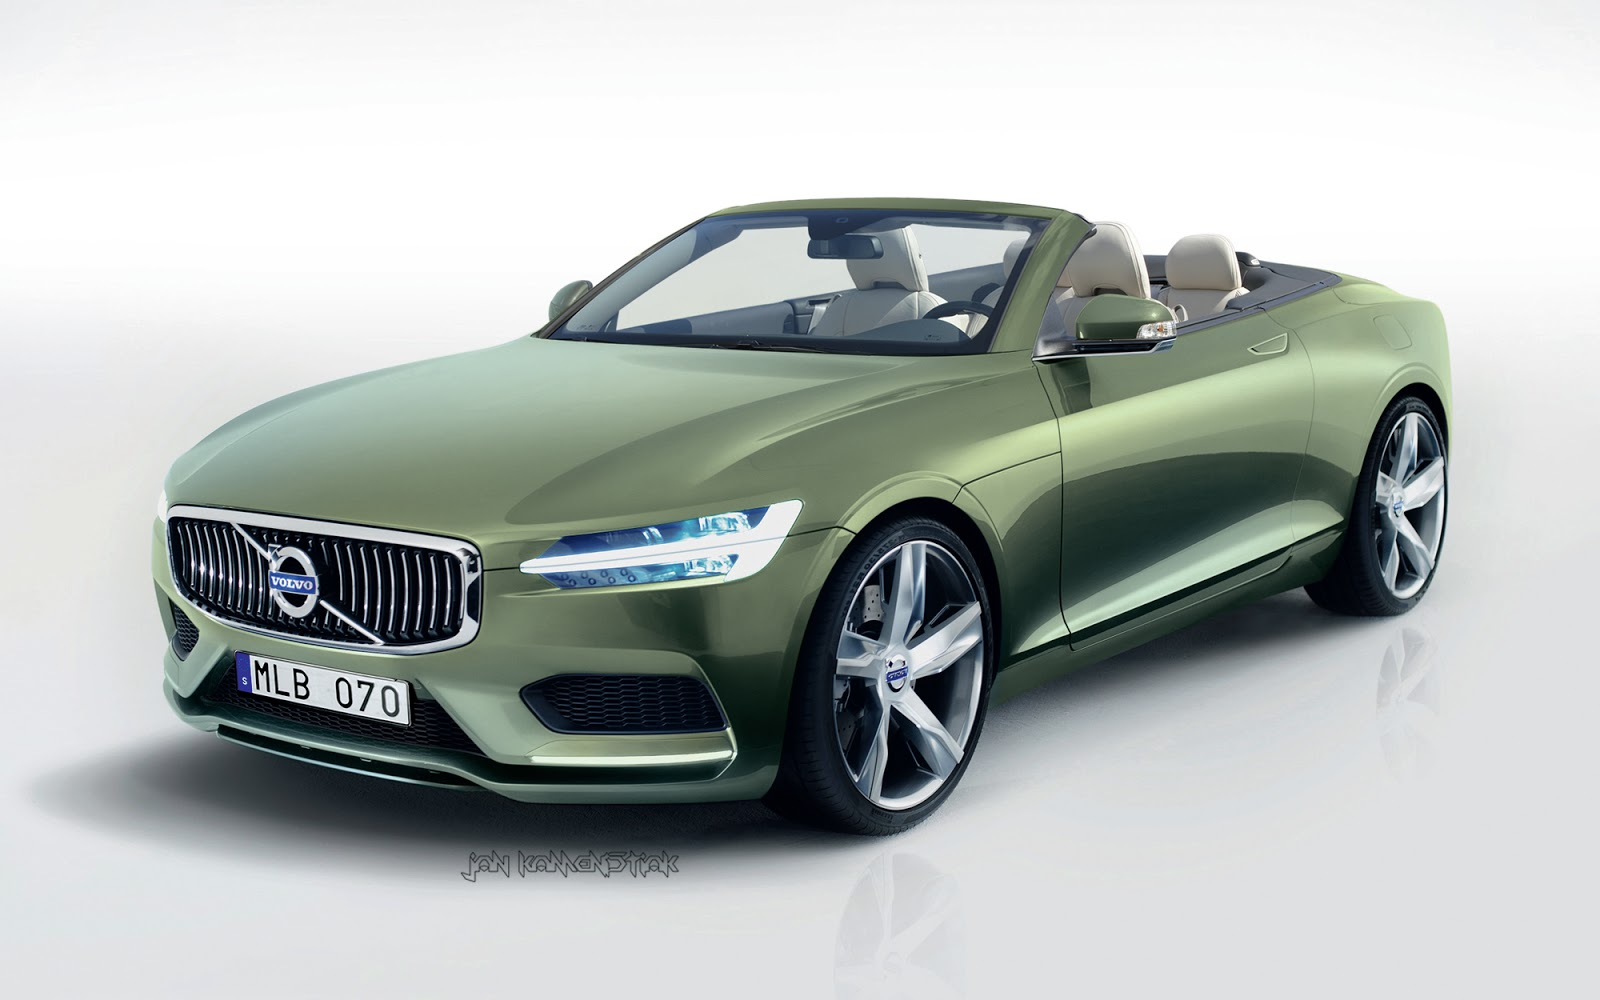 Volvo cabriolet photo - 1